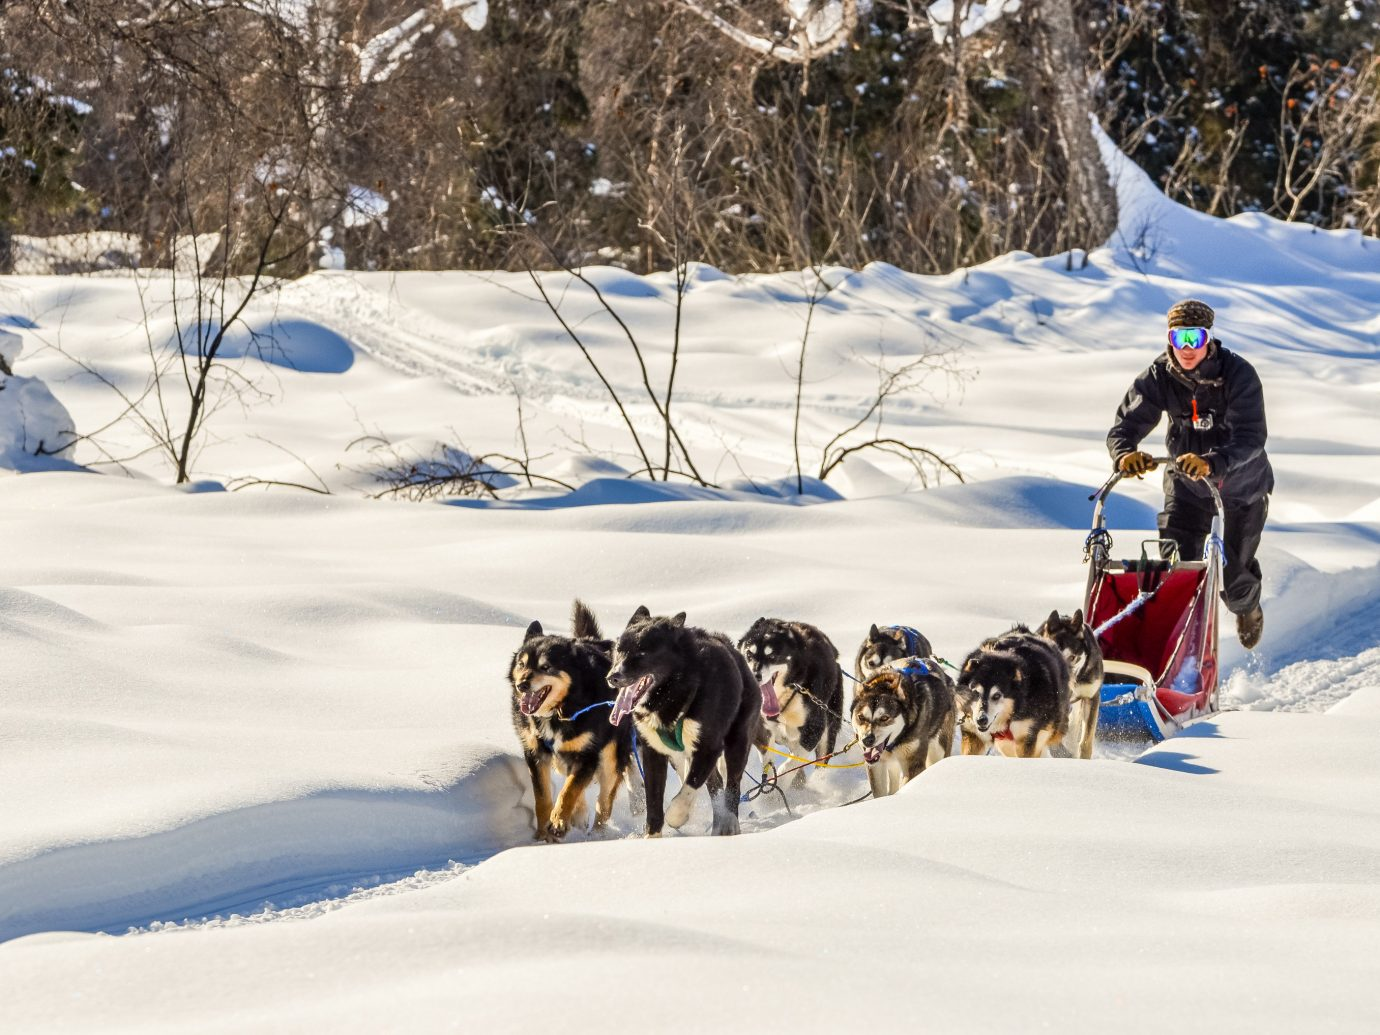 Trip Ideas snow outdoor tree transport skiing vehicle sled land vehicle mushing dog sled Winter sled dog racing Dog season sled dog dog like mammal nordic skiing